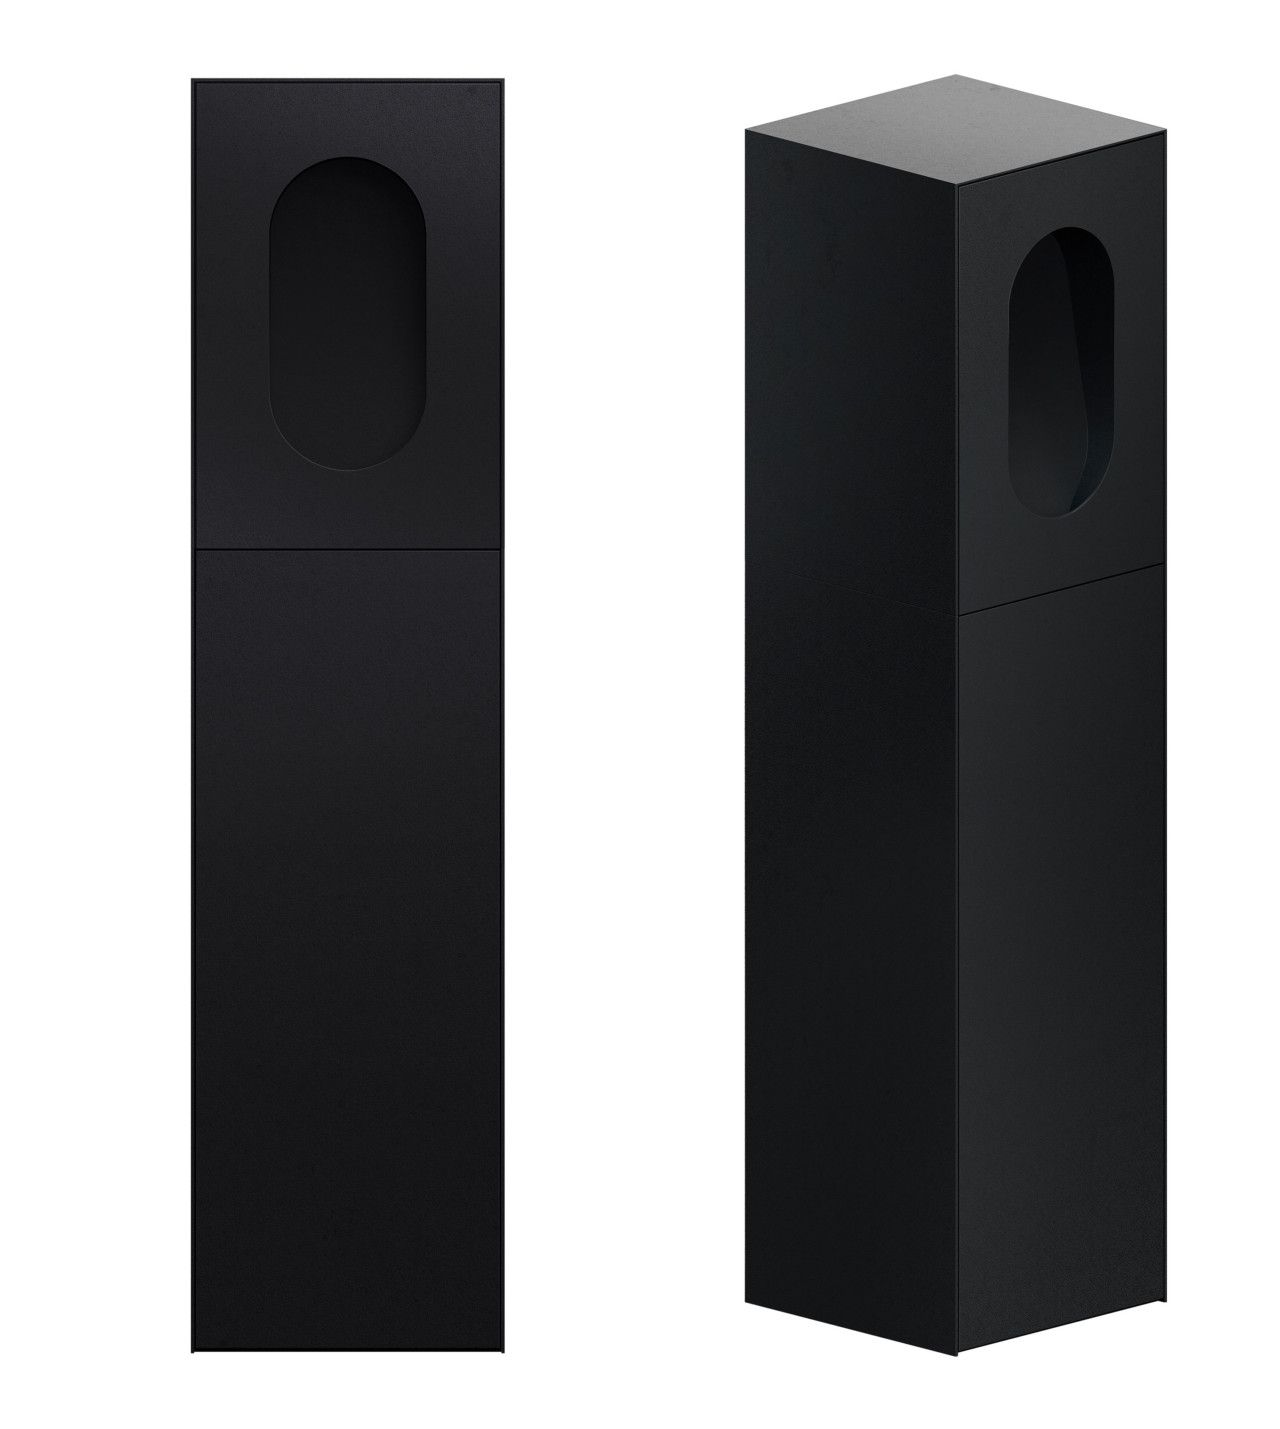 The apas monolith water cooler simplifies the design of